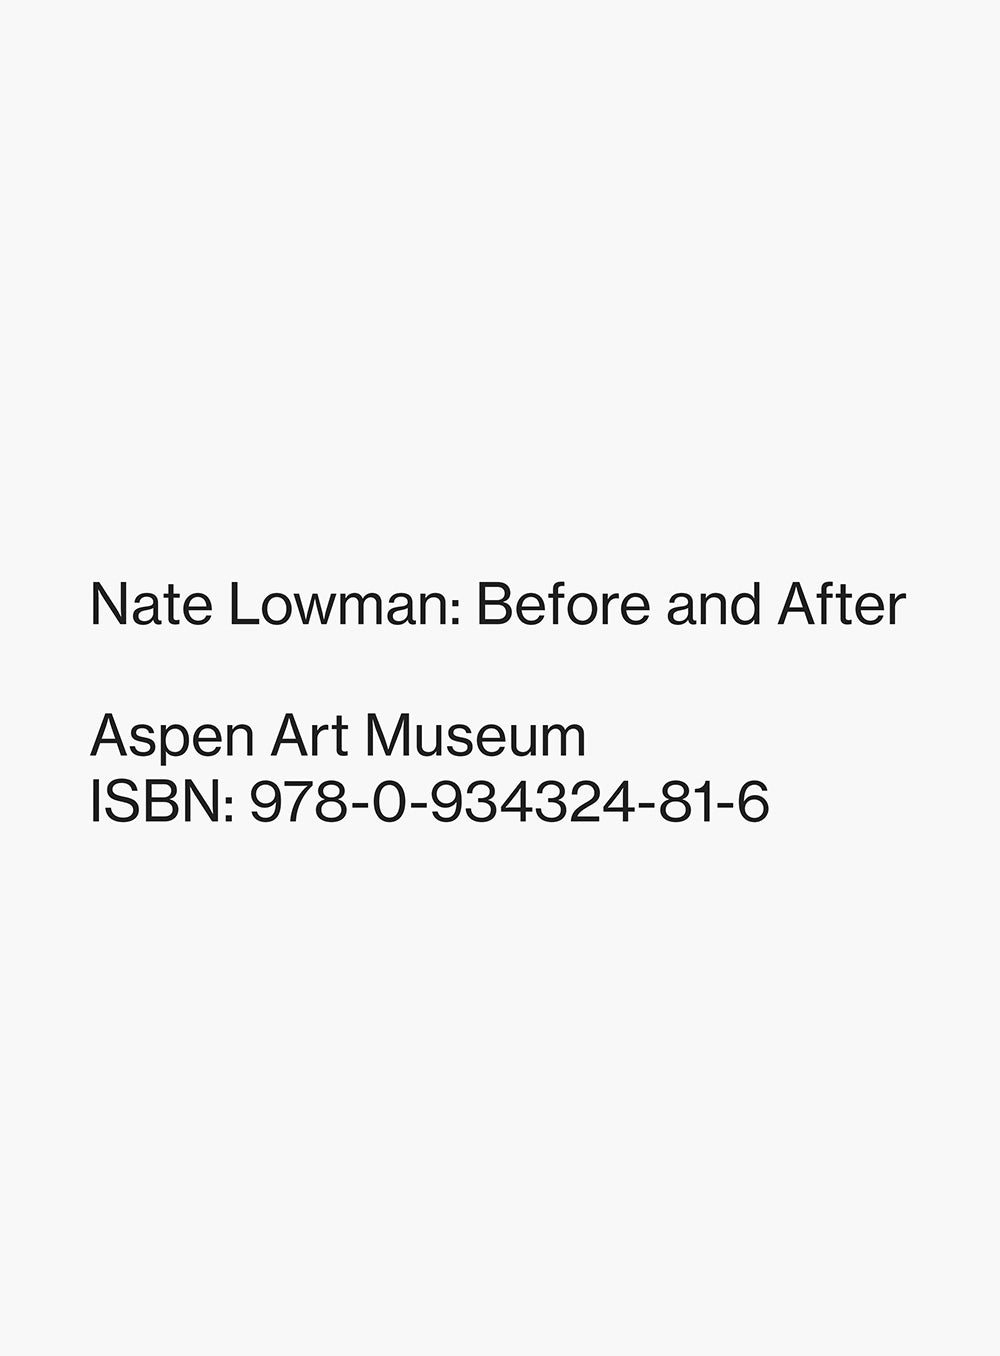 Nate Lowman: Before and After